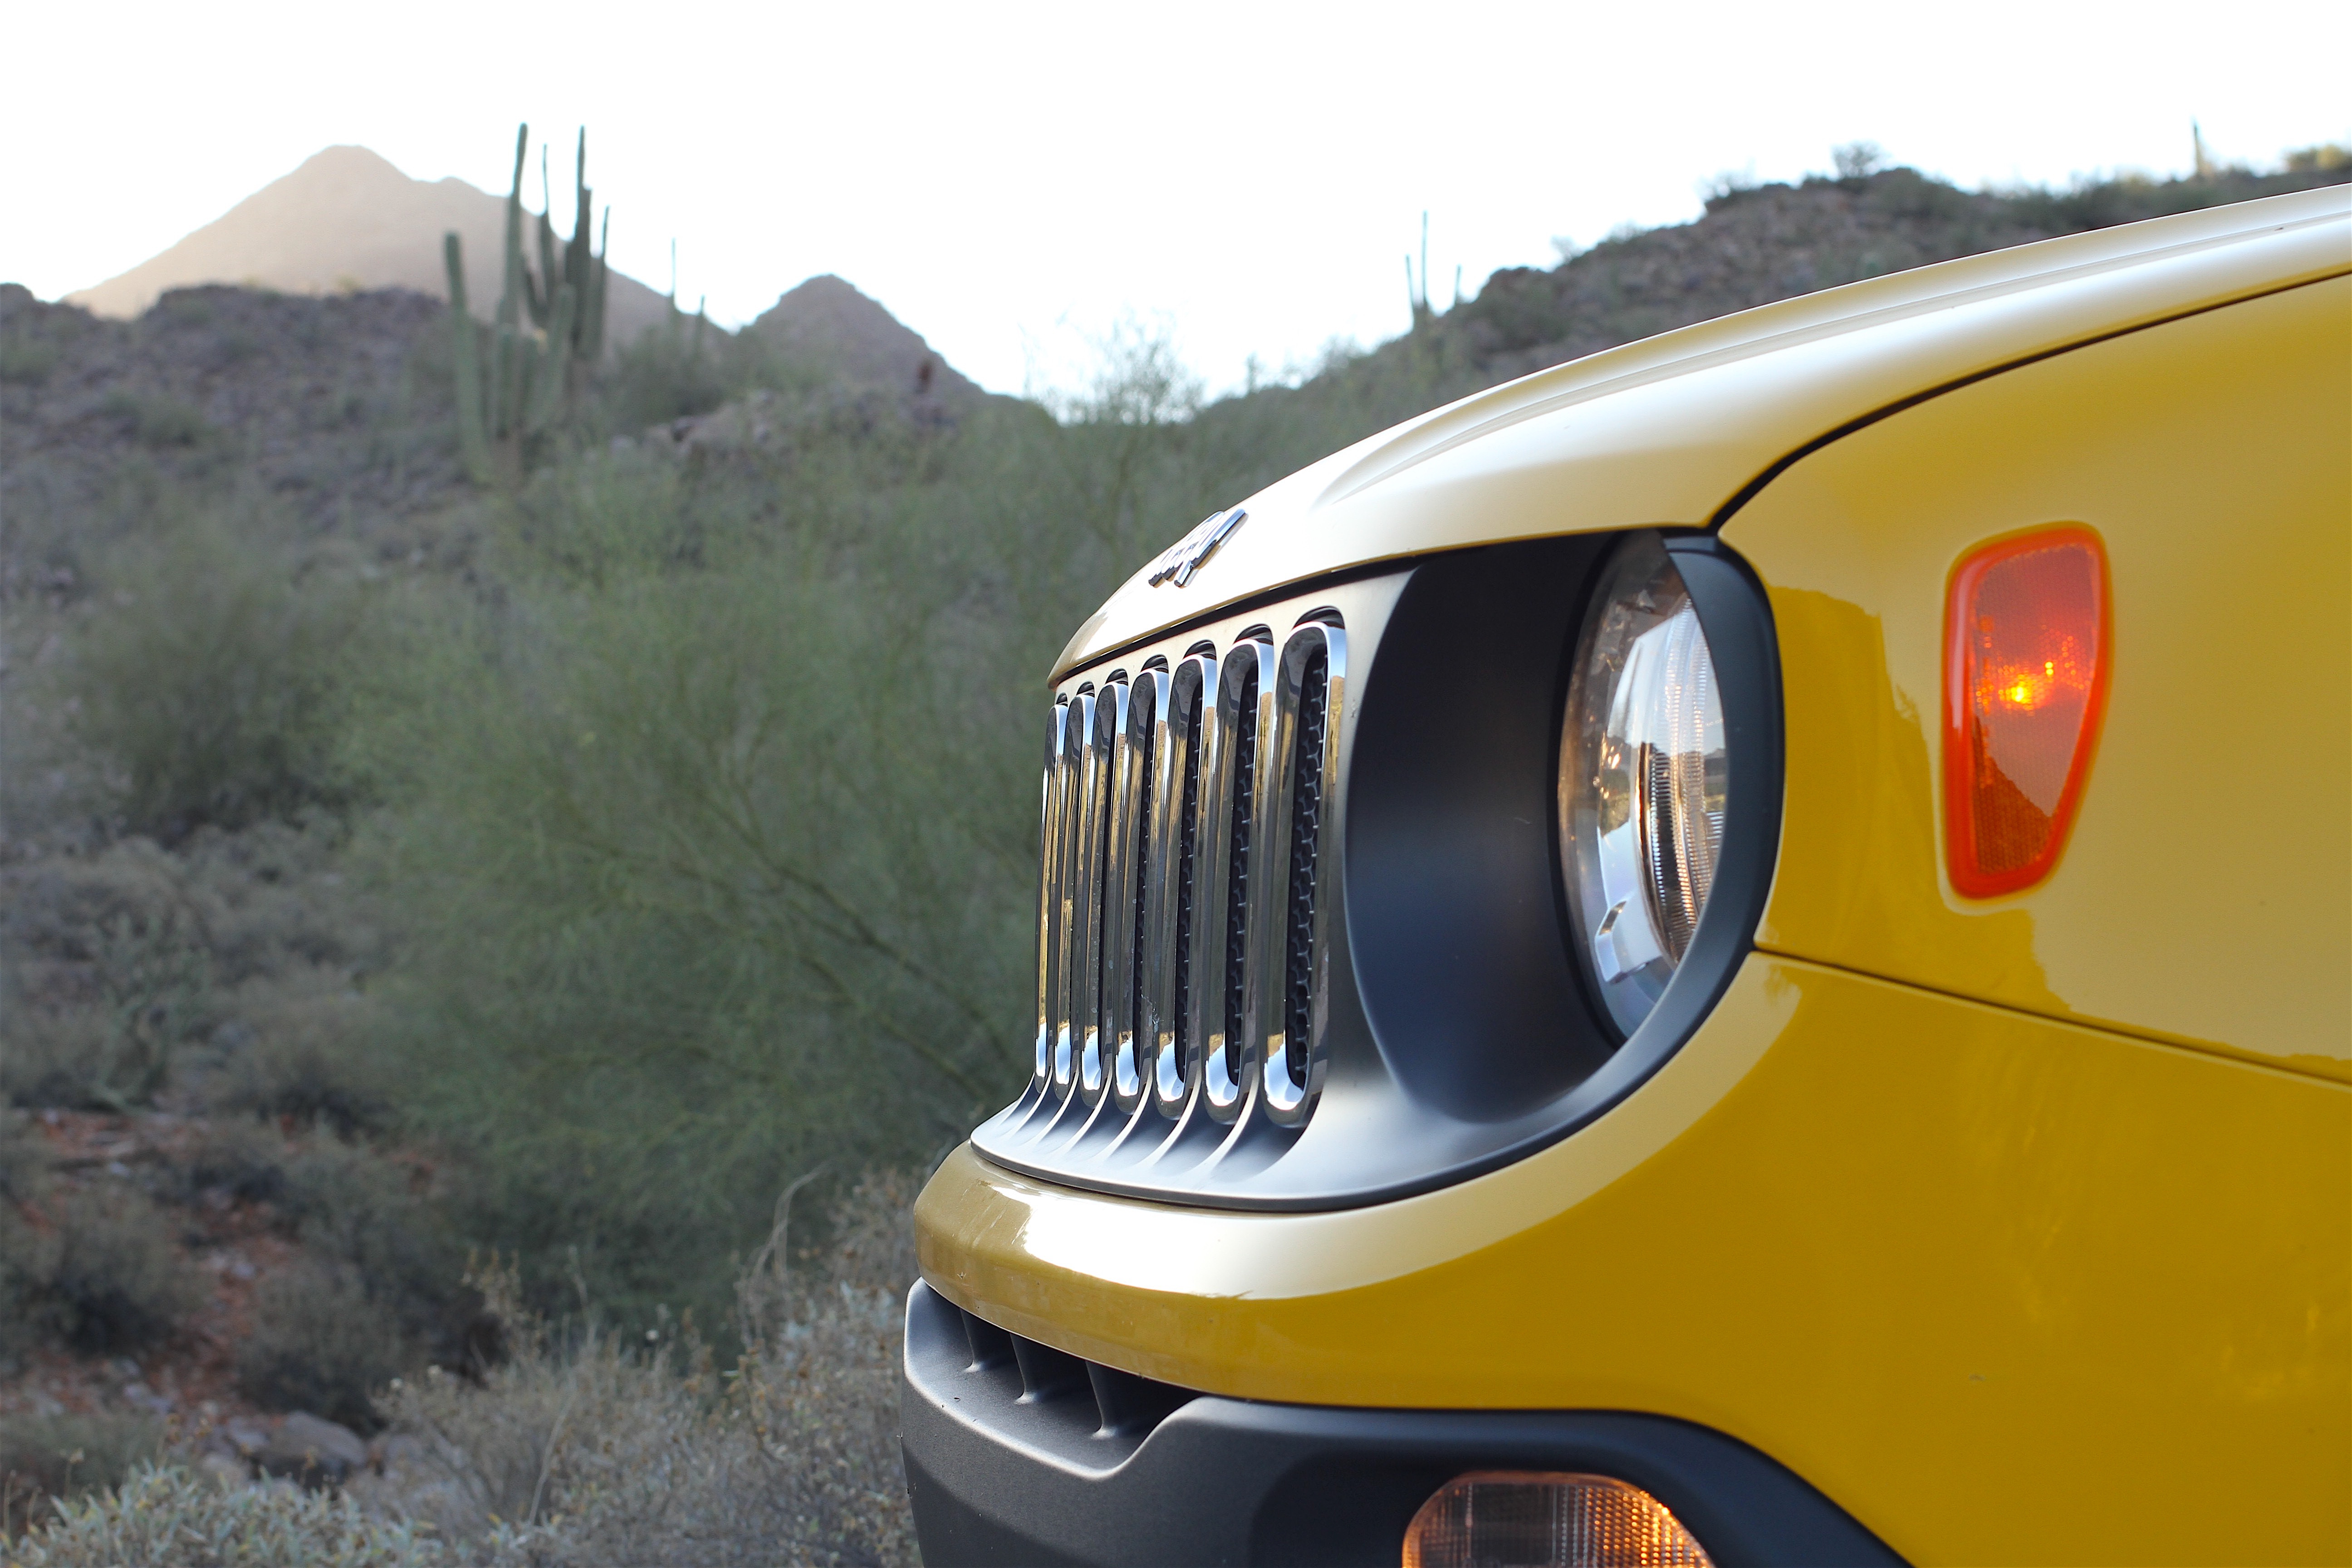 The Renegade Sport retains some traditional Jeep styling cues.